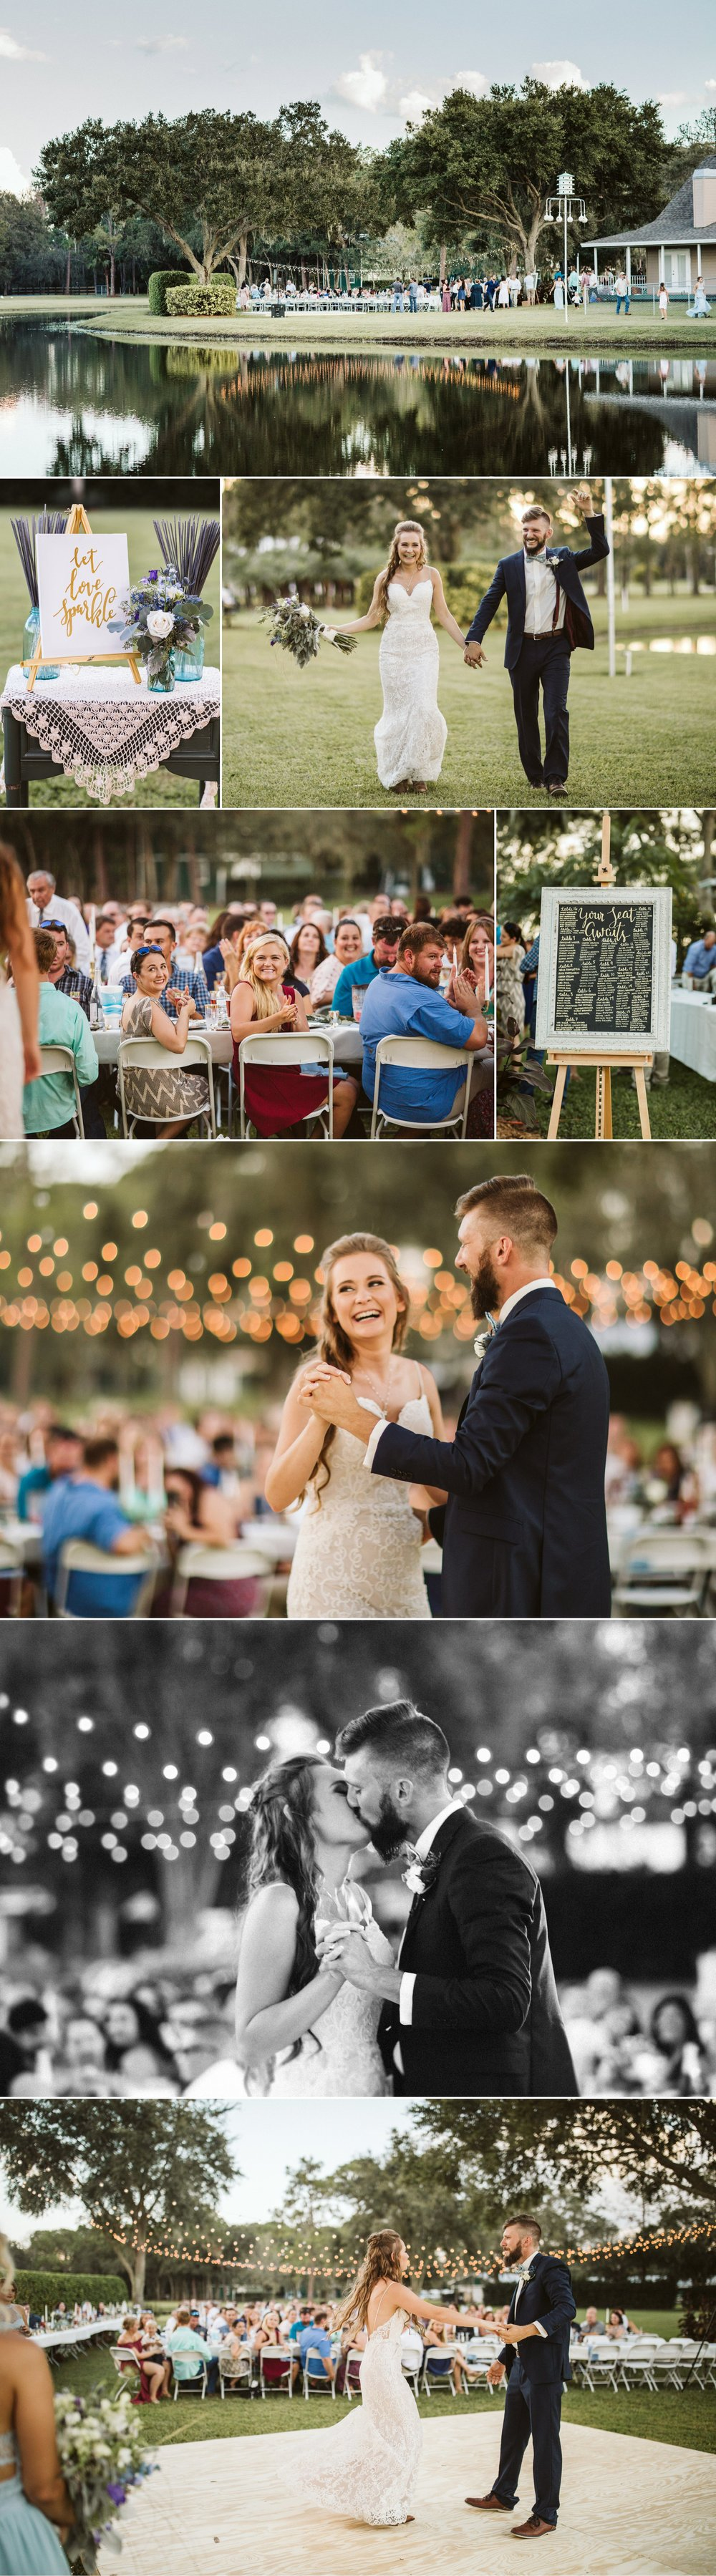 Romantic Floral Outdoor Field Chapel Wedding- Sarasota Florida- Courtney & Isaac22.jpg